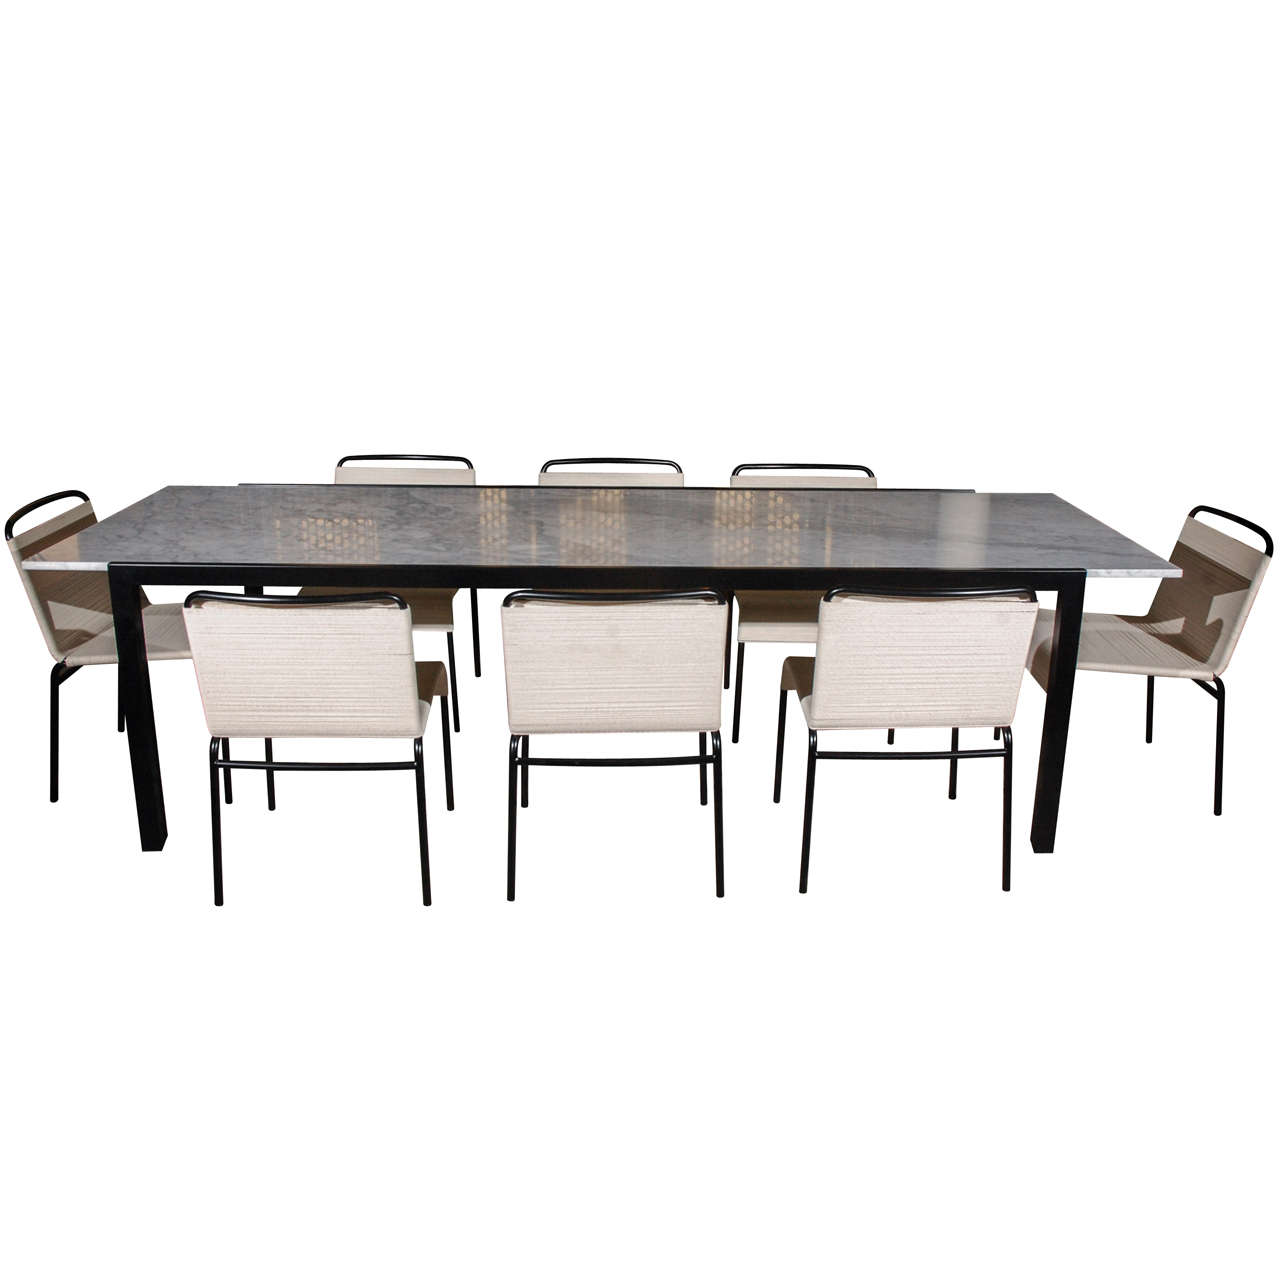 Van Keppel Green Dining Table and Chairs